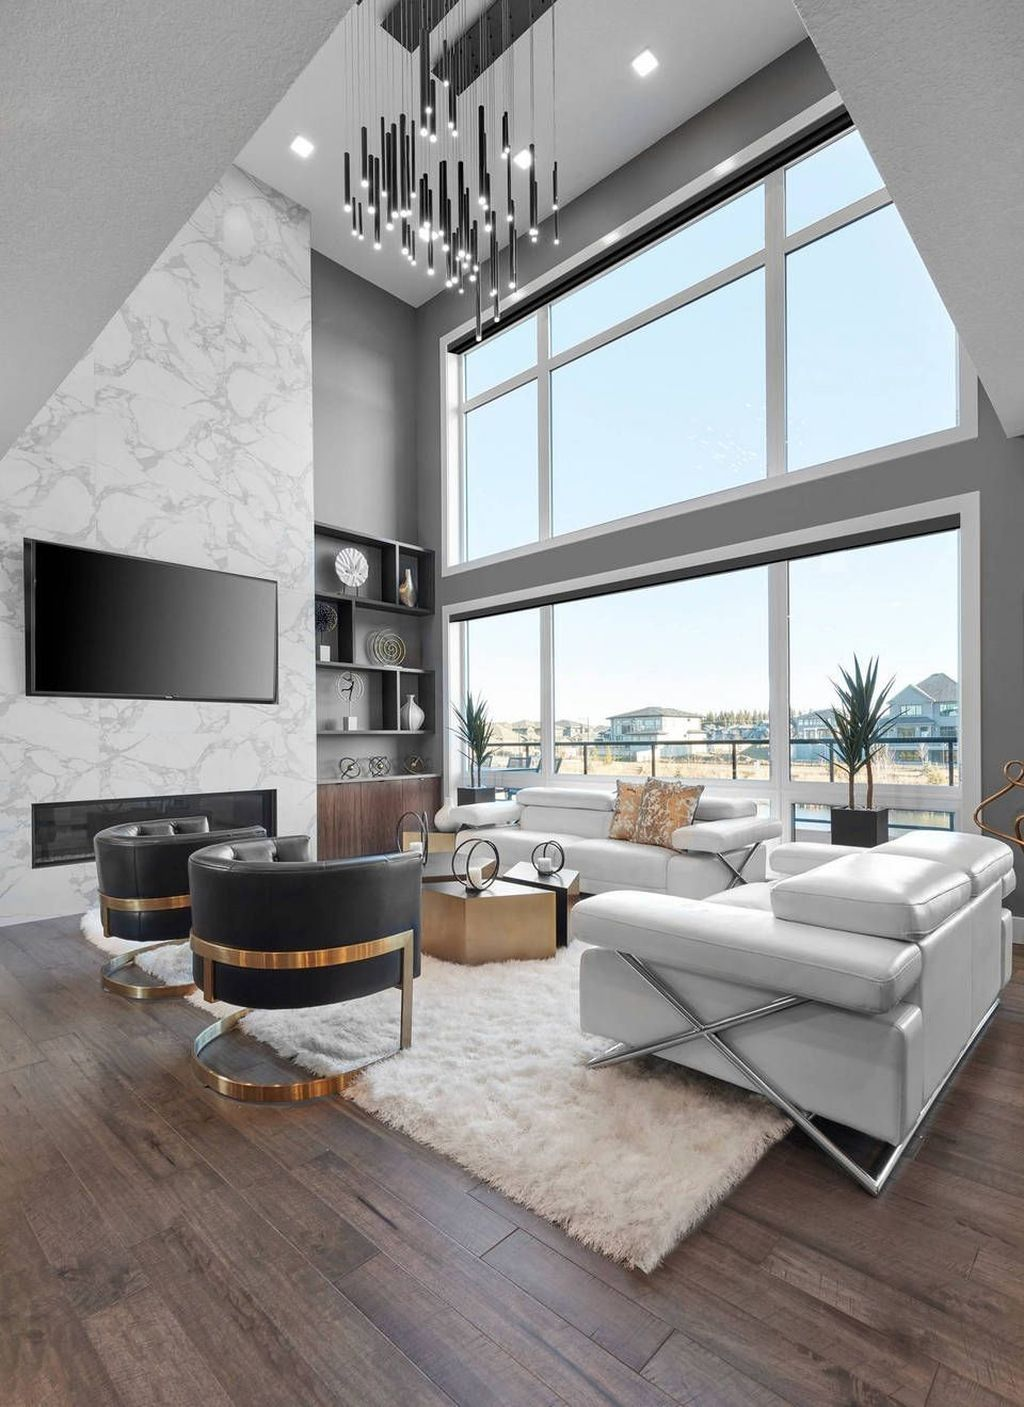 44 Classy Living Room Ideas For Your Home Nowaday Classy Living Room Best Modern House Design Modern Houses Interior